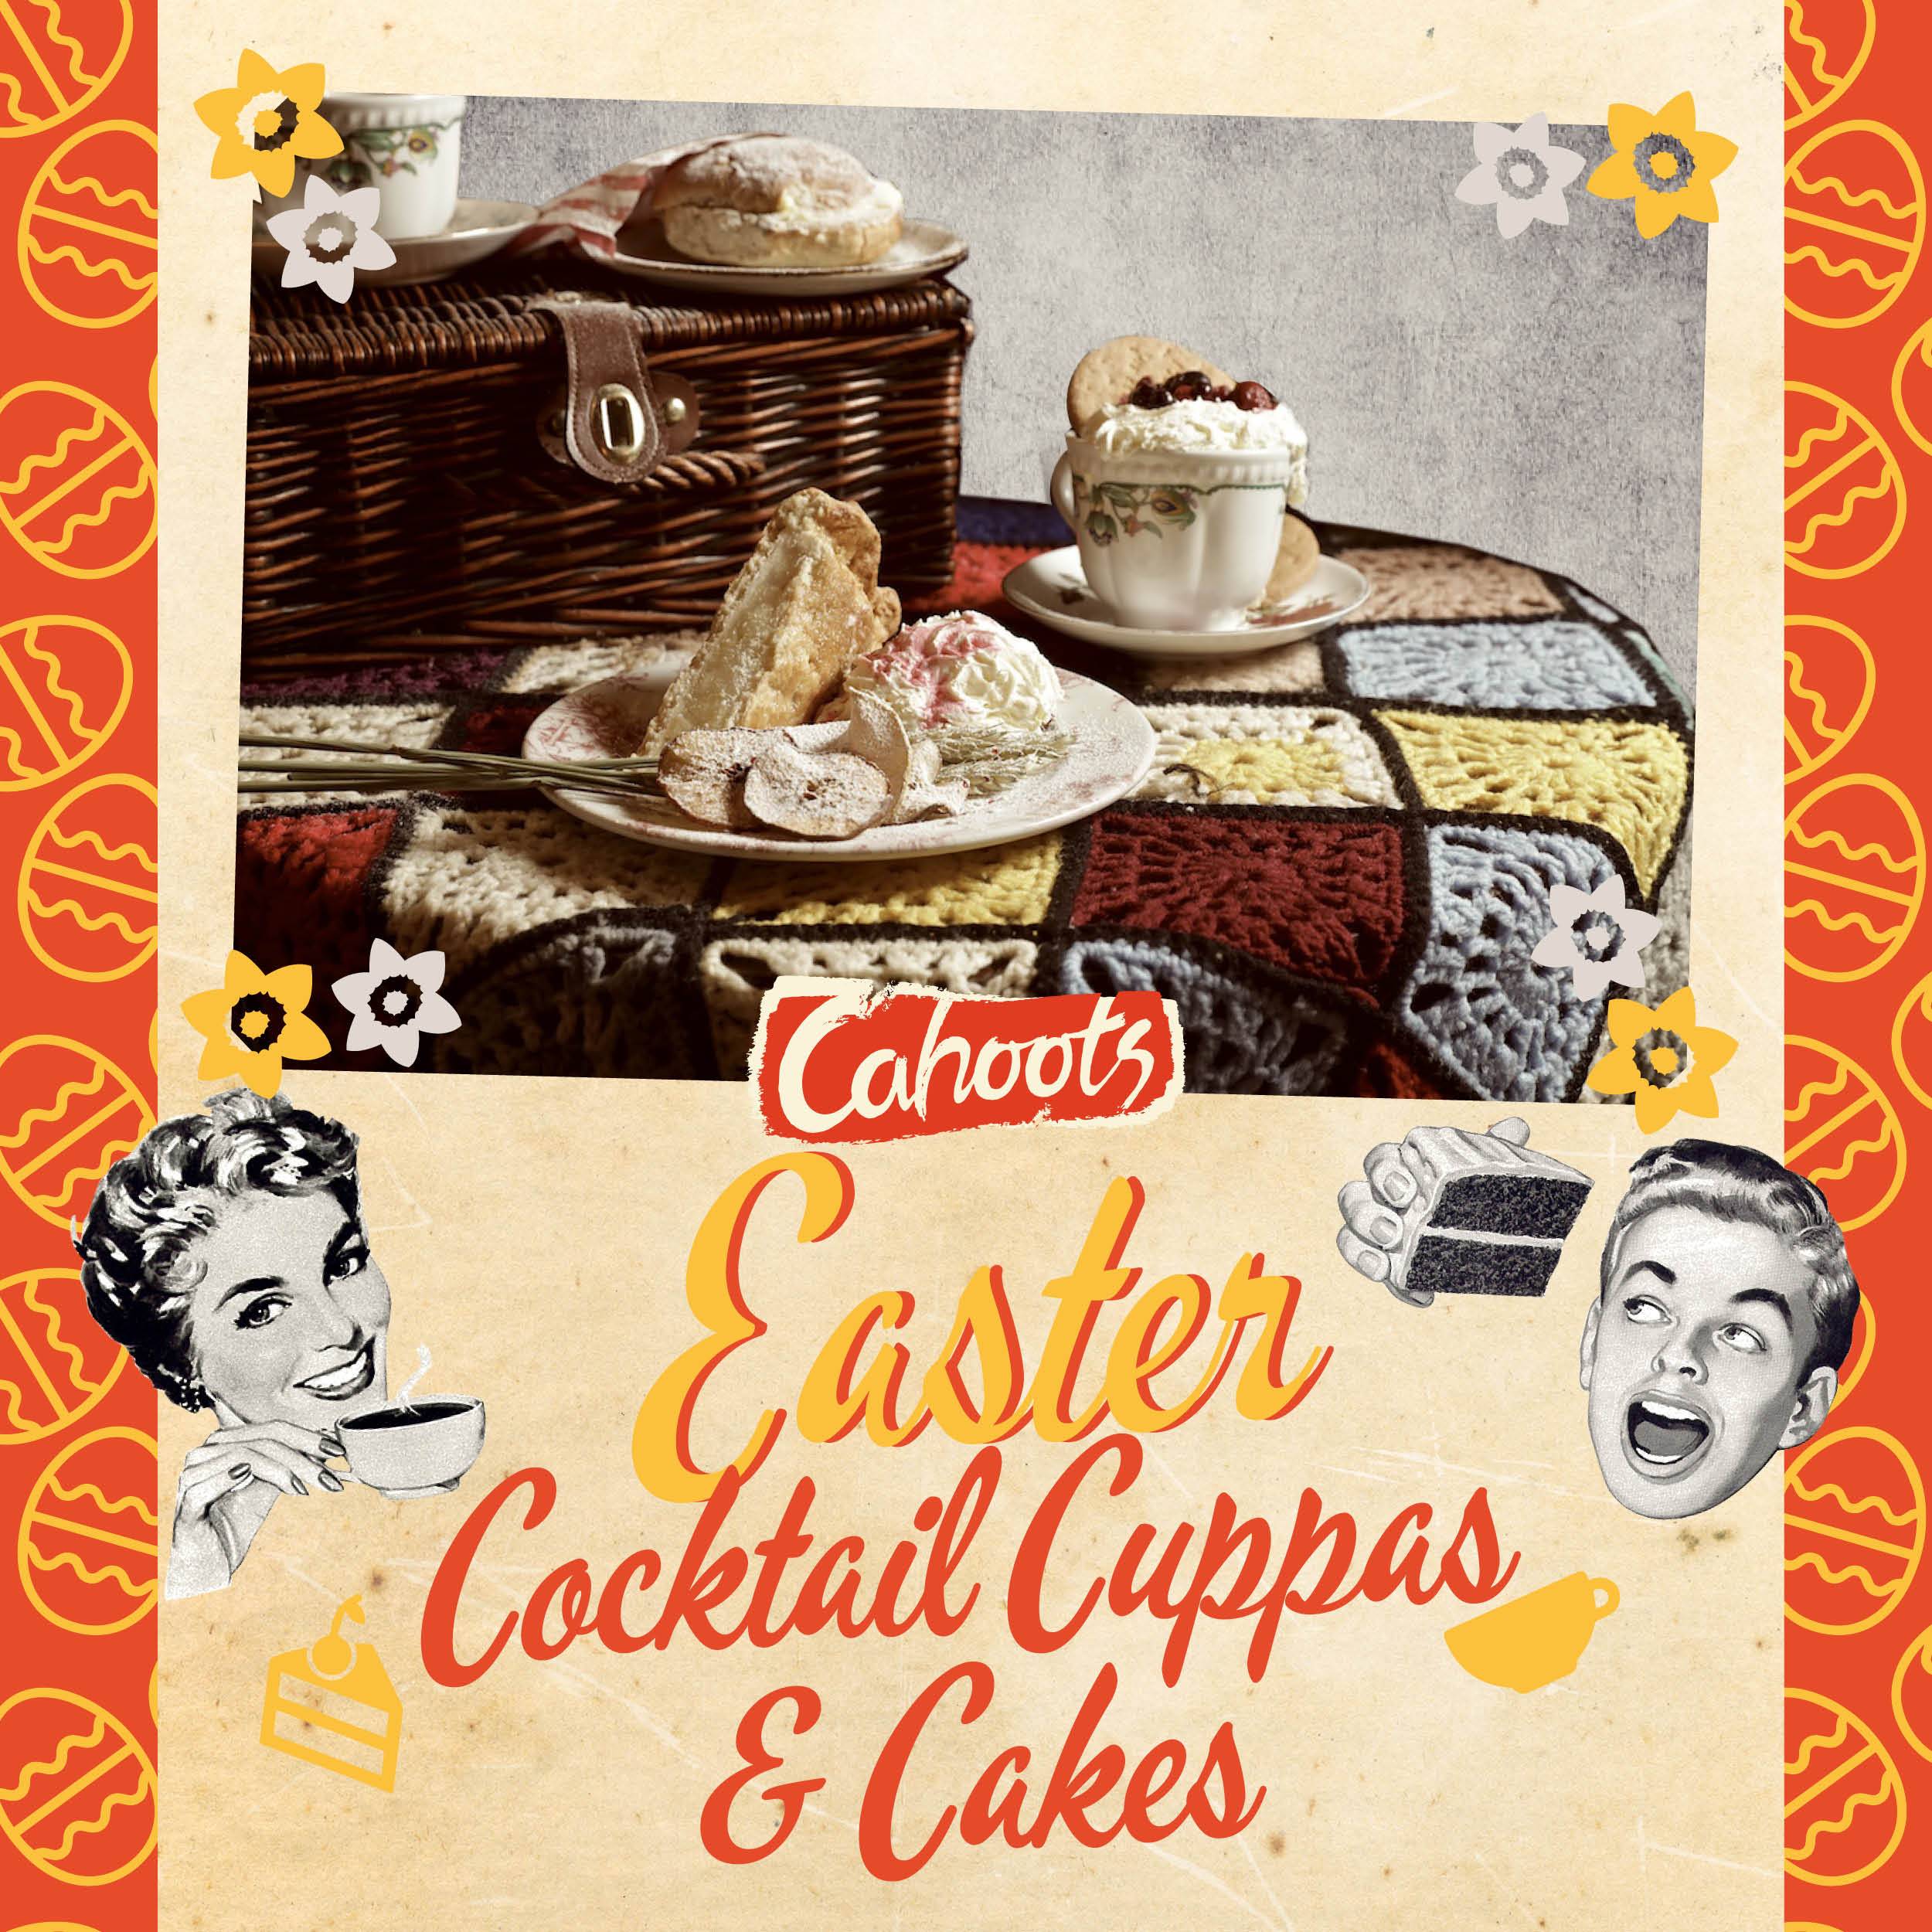 Easter Cocktail Cuppas & Cakes